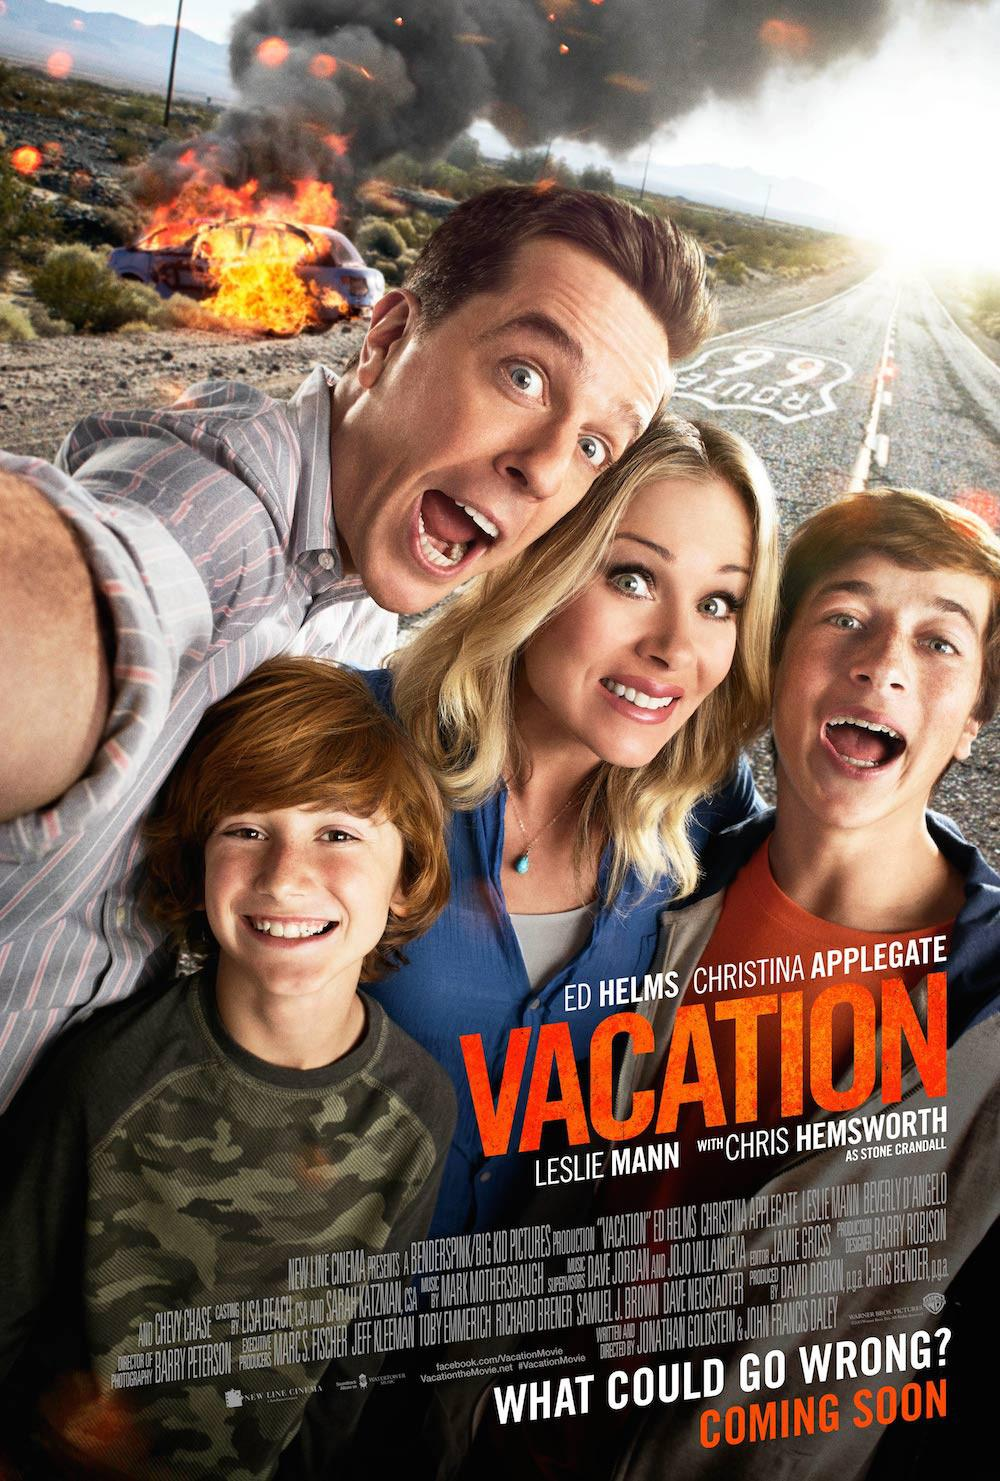 Come ti Rovino le Vacanze - Vacation - Vacaciones - Vive les vacances - Rusty Griswold (Ed Helms) - Debbie Griswold (Christina Applegate) - James Griswold (Skyler Gisondo) - Kevin Griswold (Steele Stebbins)